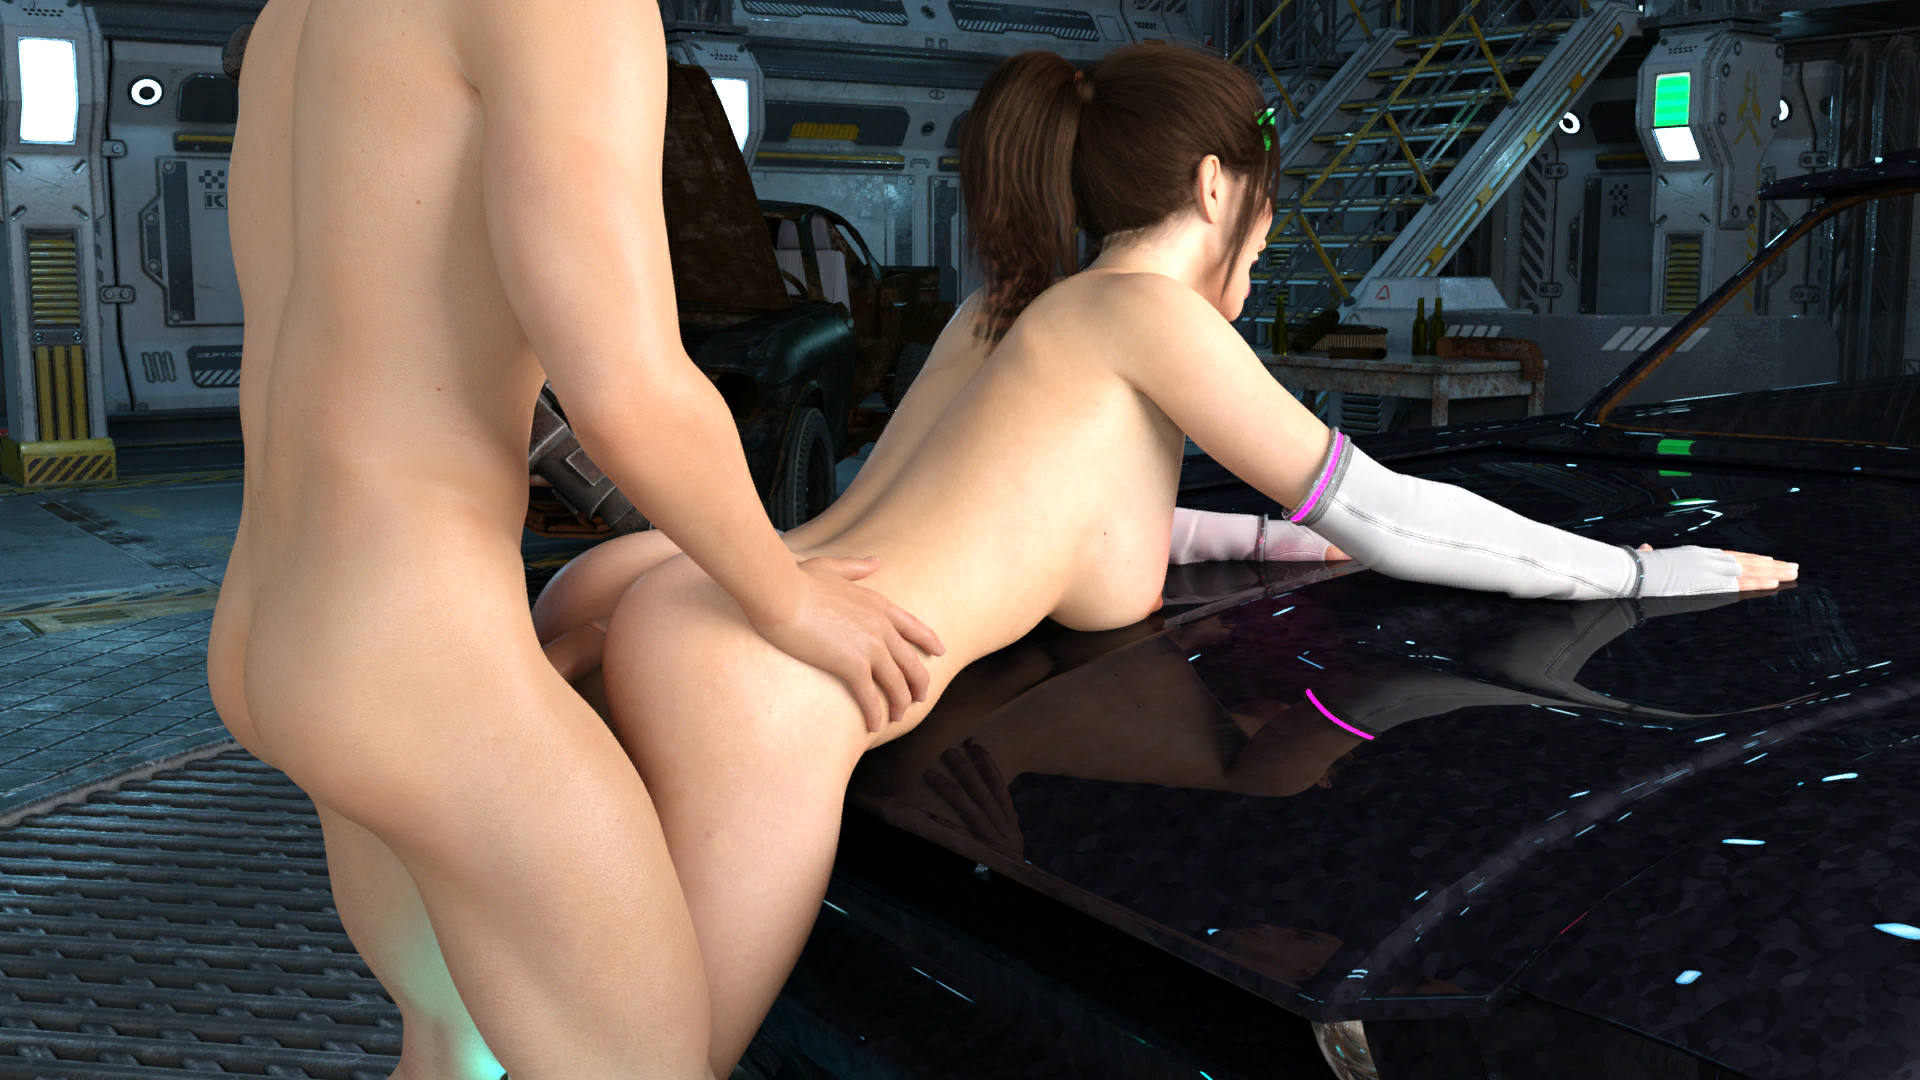 3Dx Porn Game vn] - [unity] - [completed] chop shop [3dx games] | f95zone